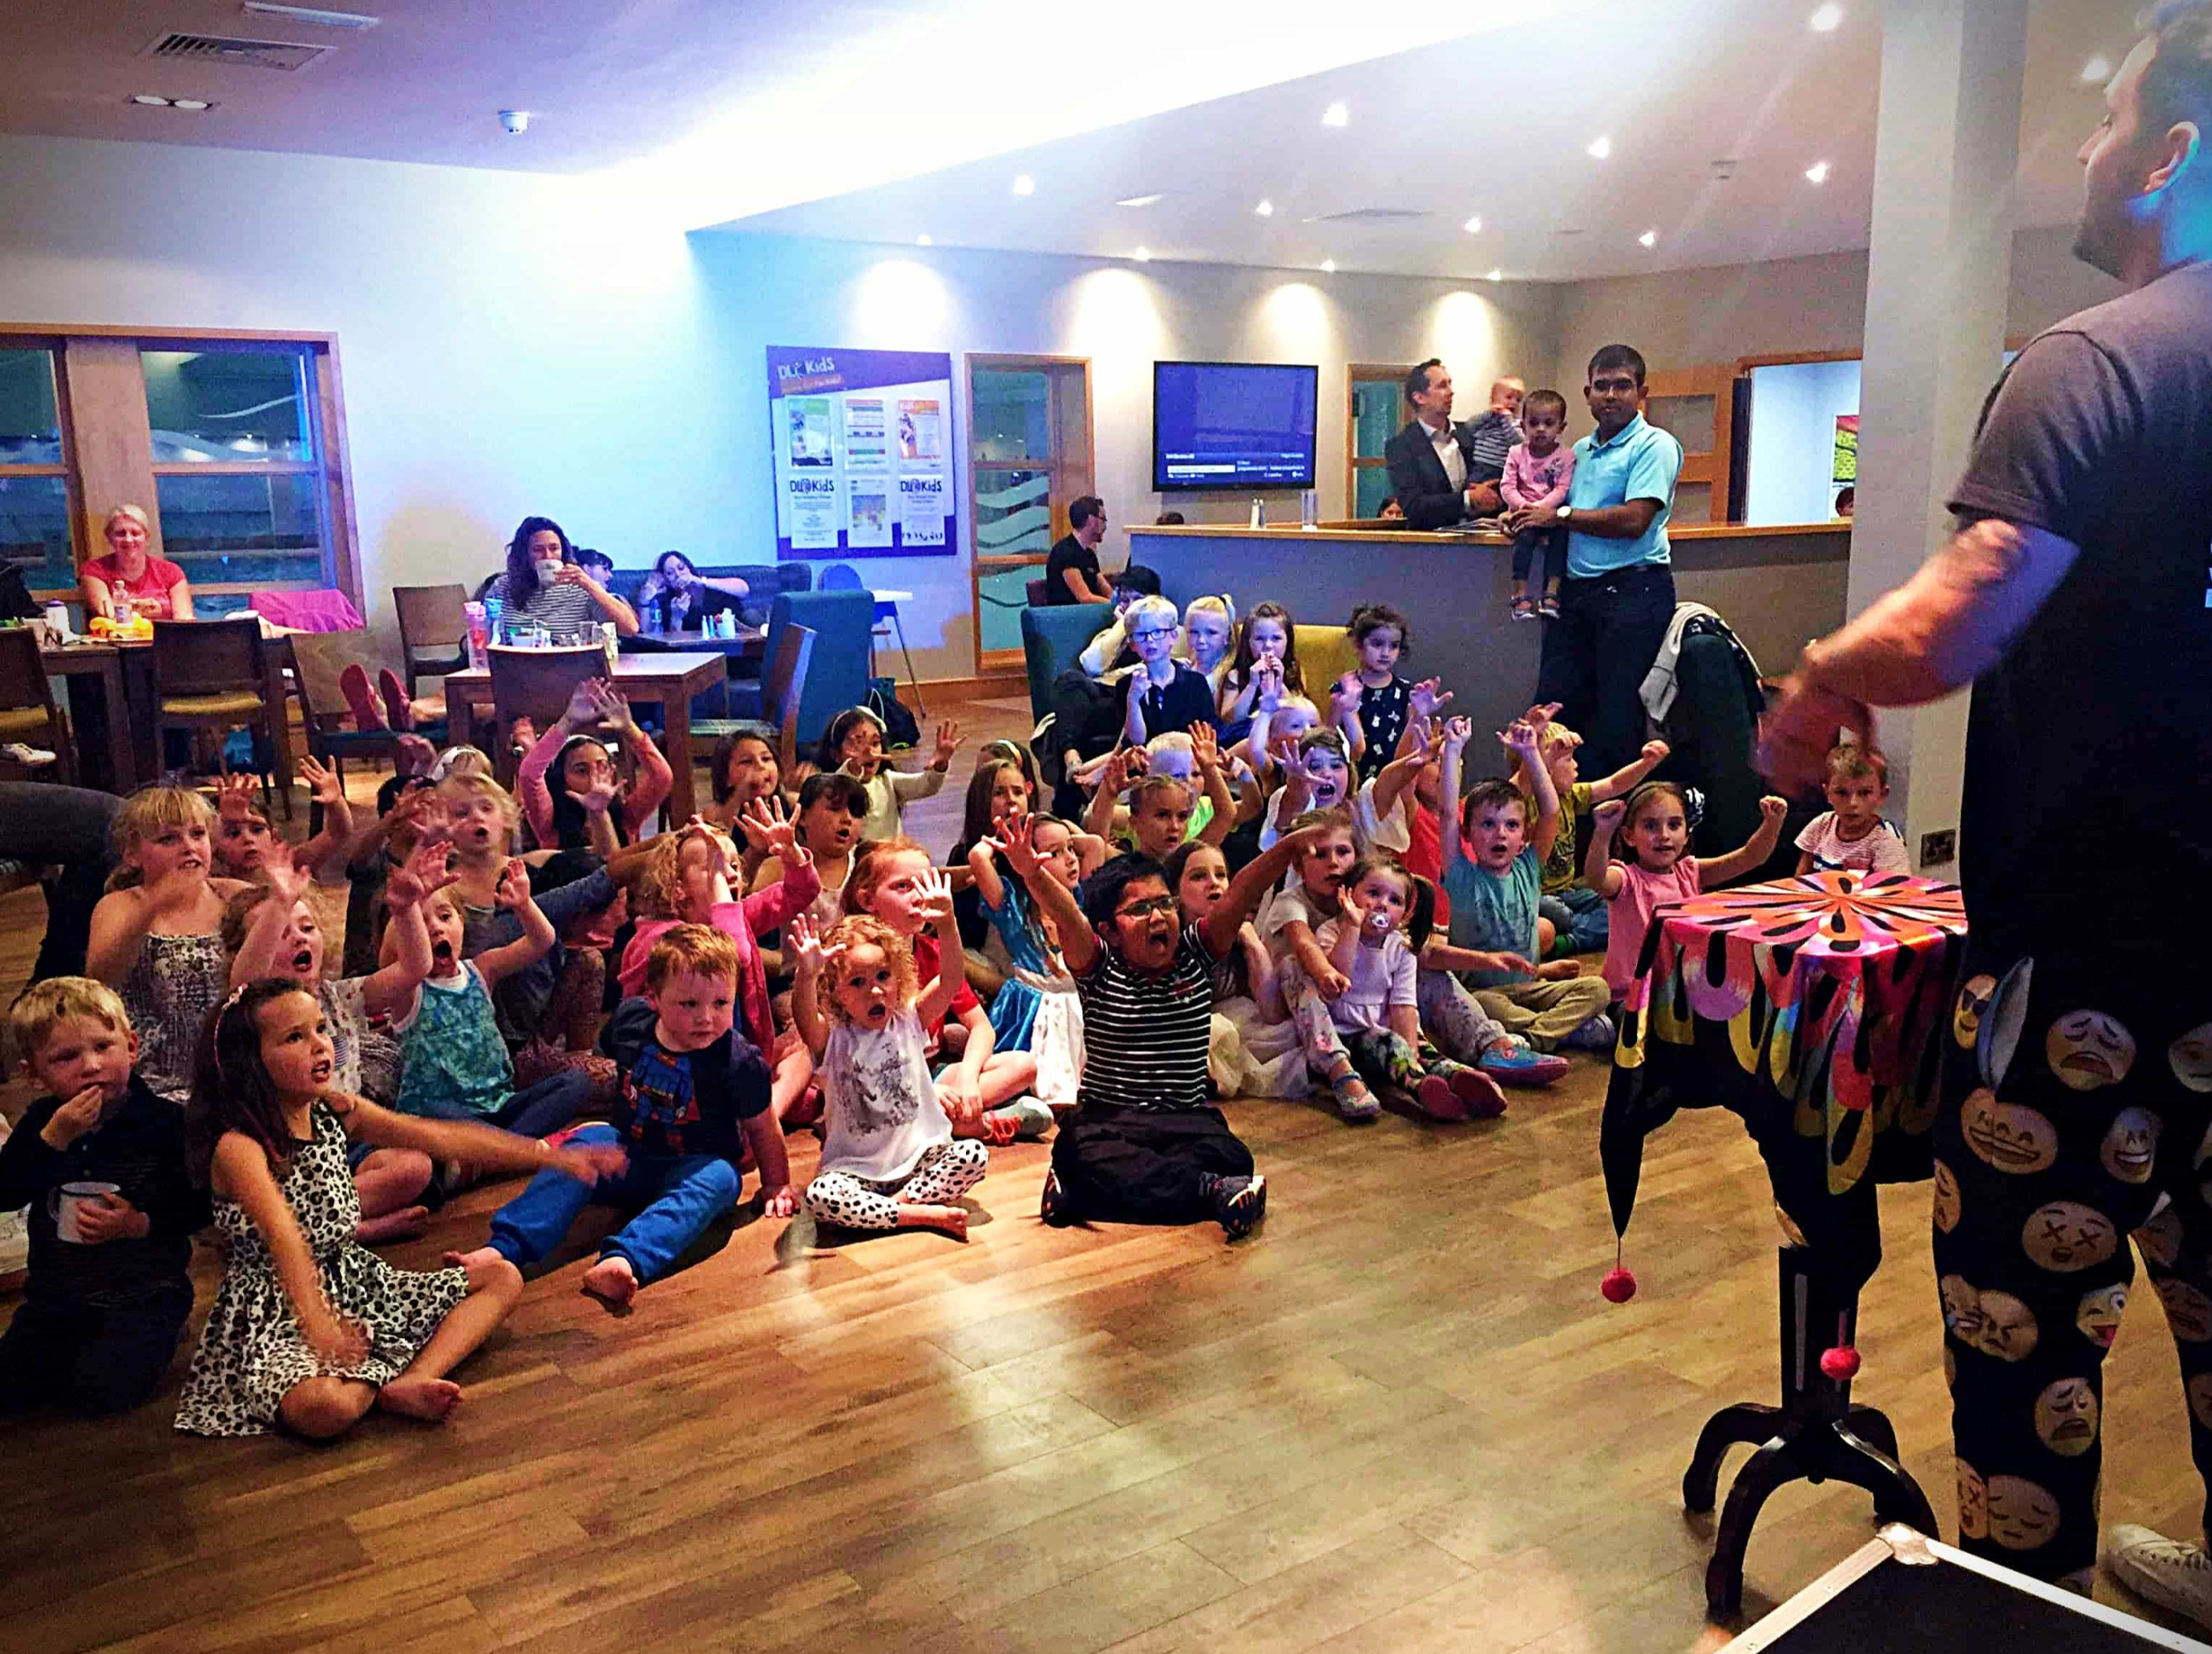 Children's magic show Essex - Moji Entertainer